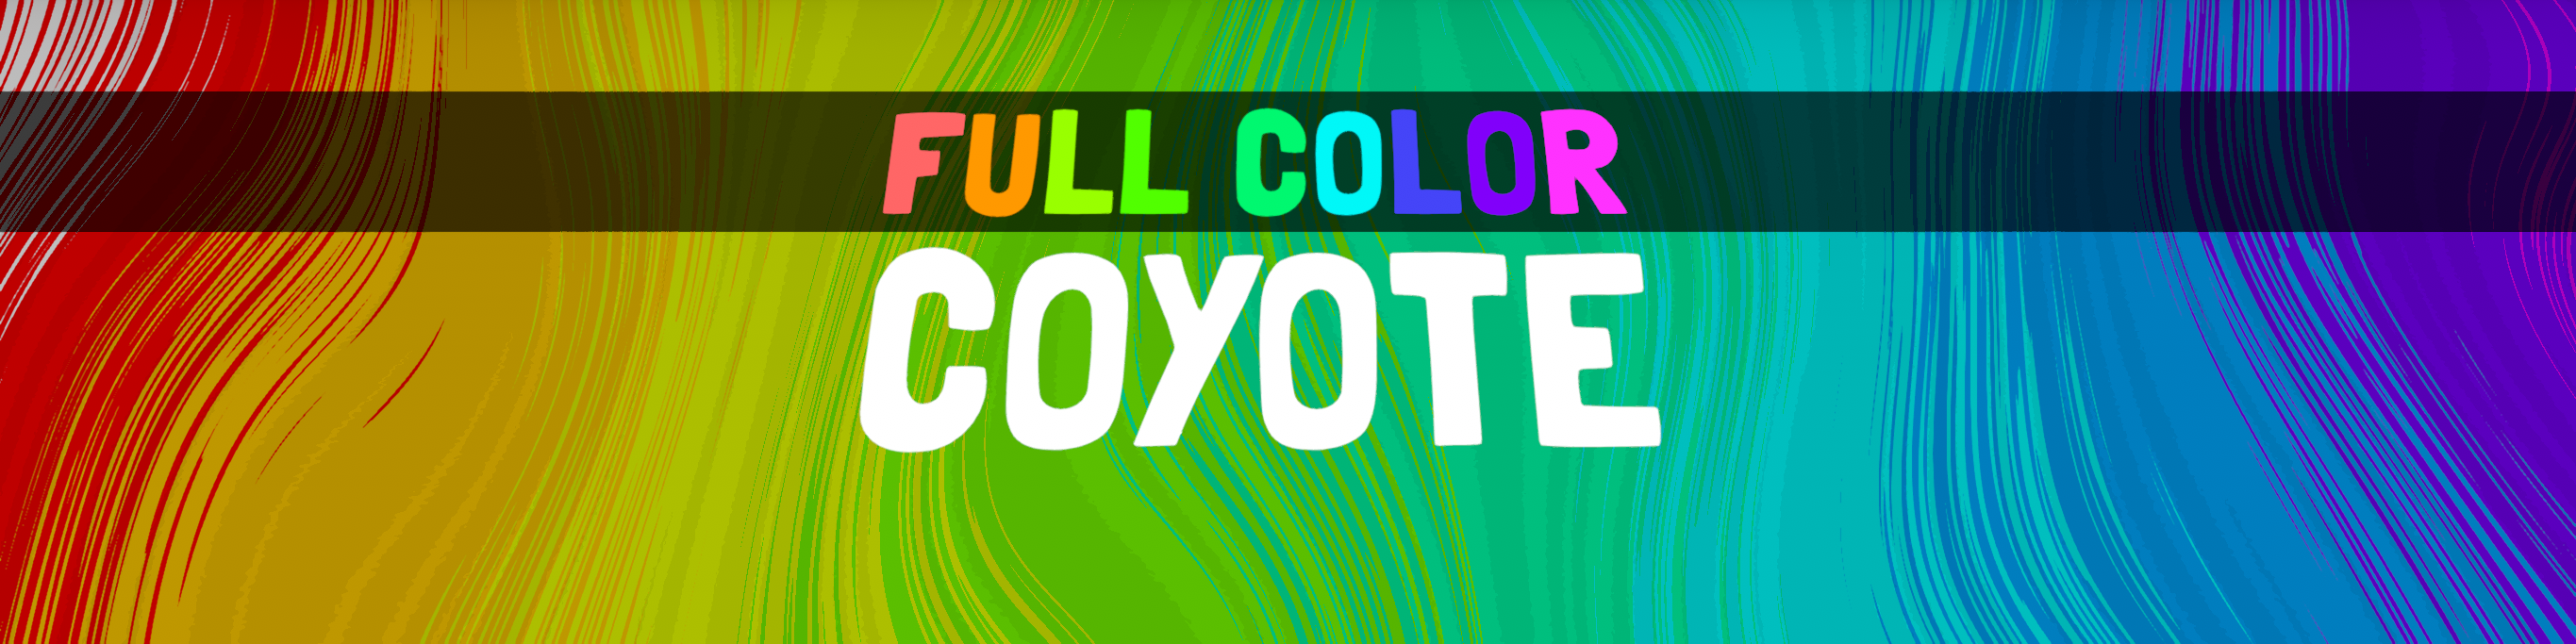 Full Color Coyote